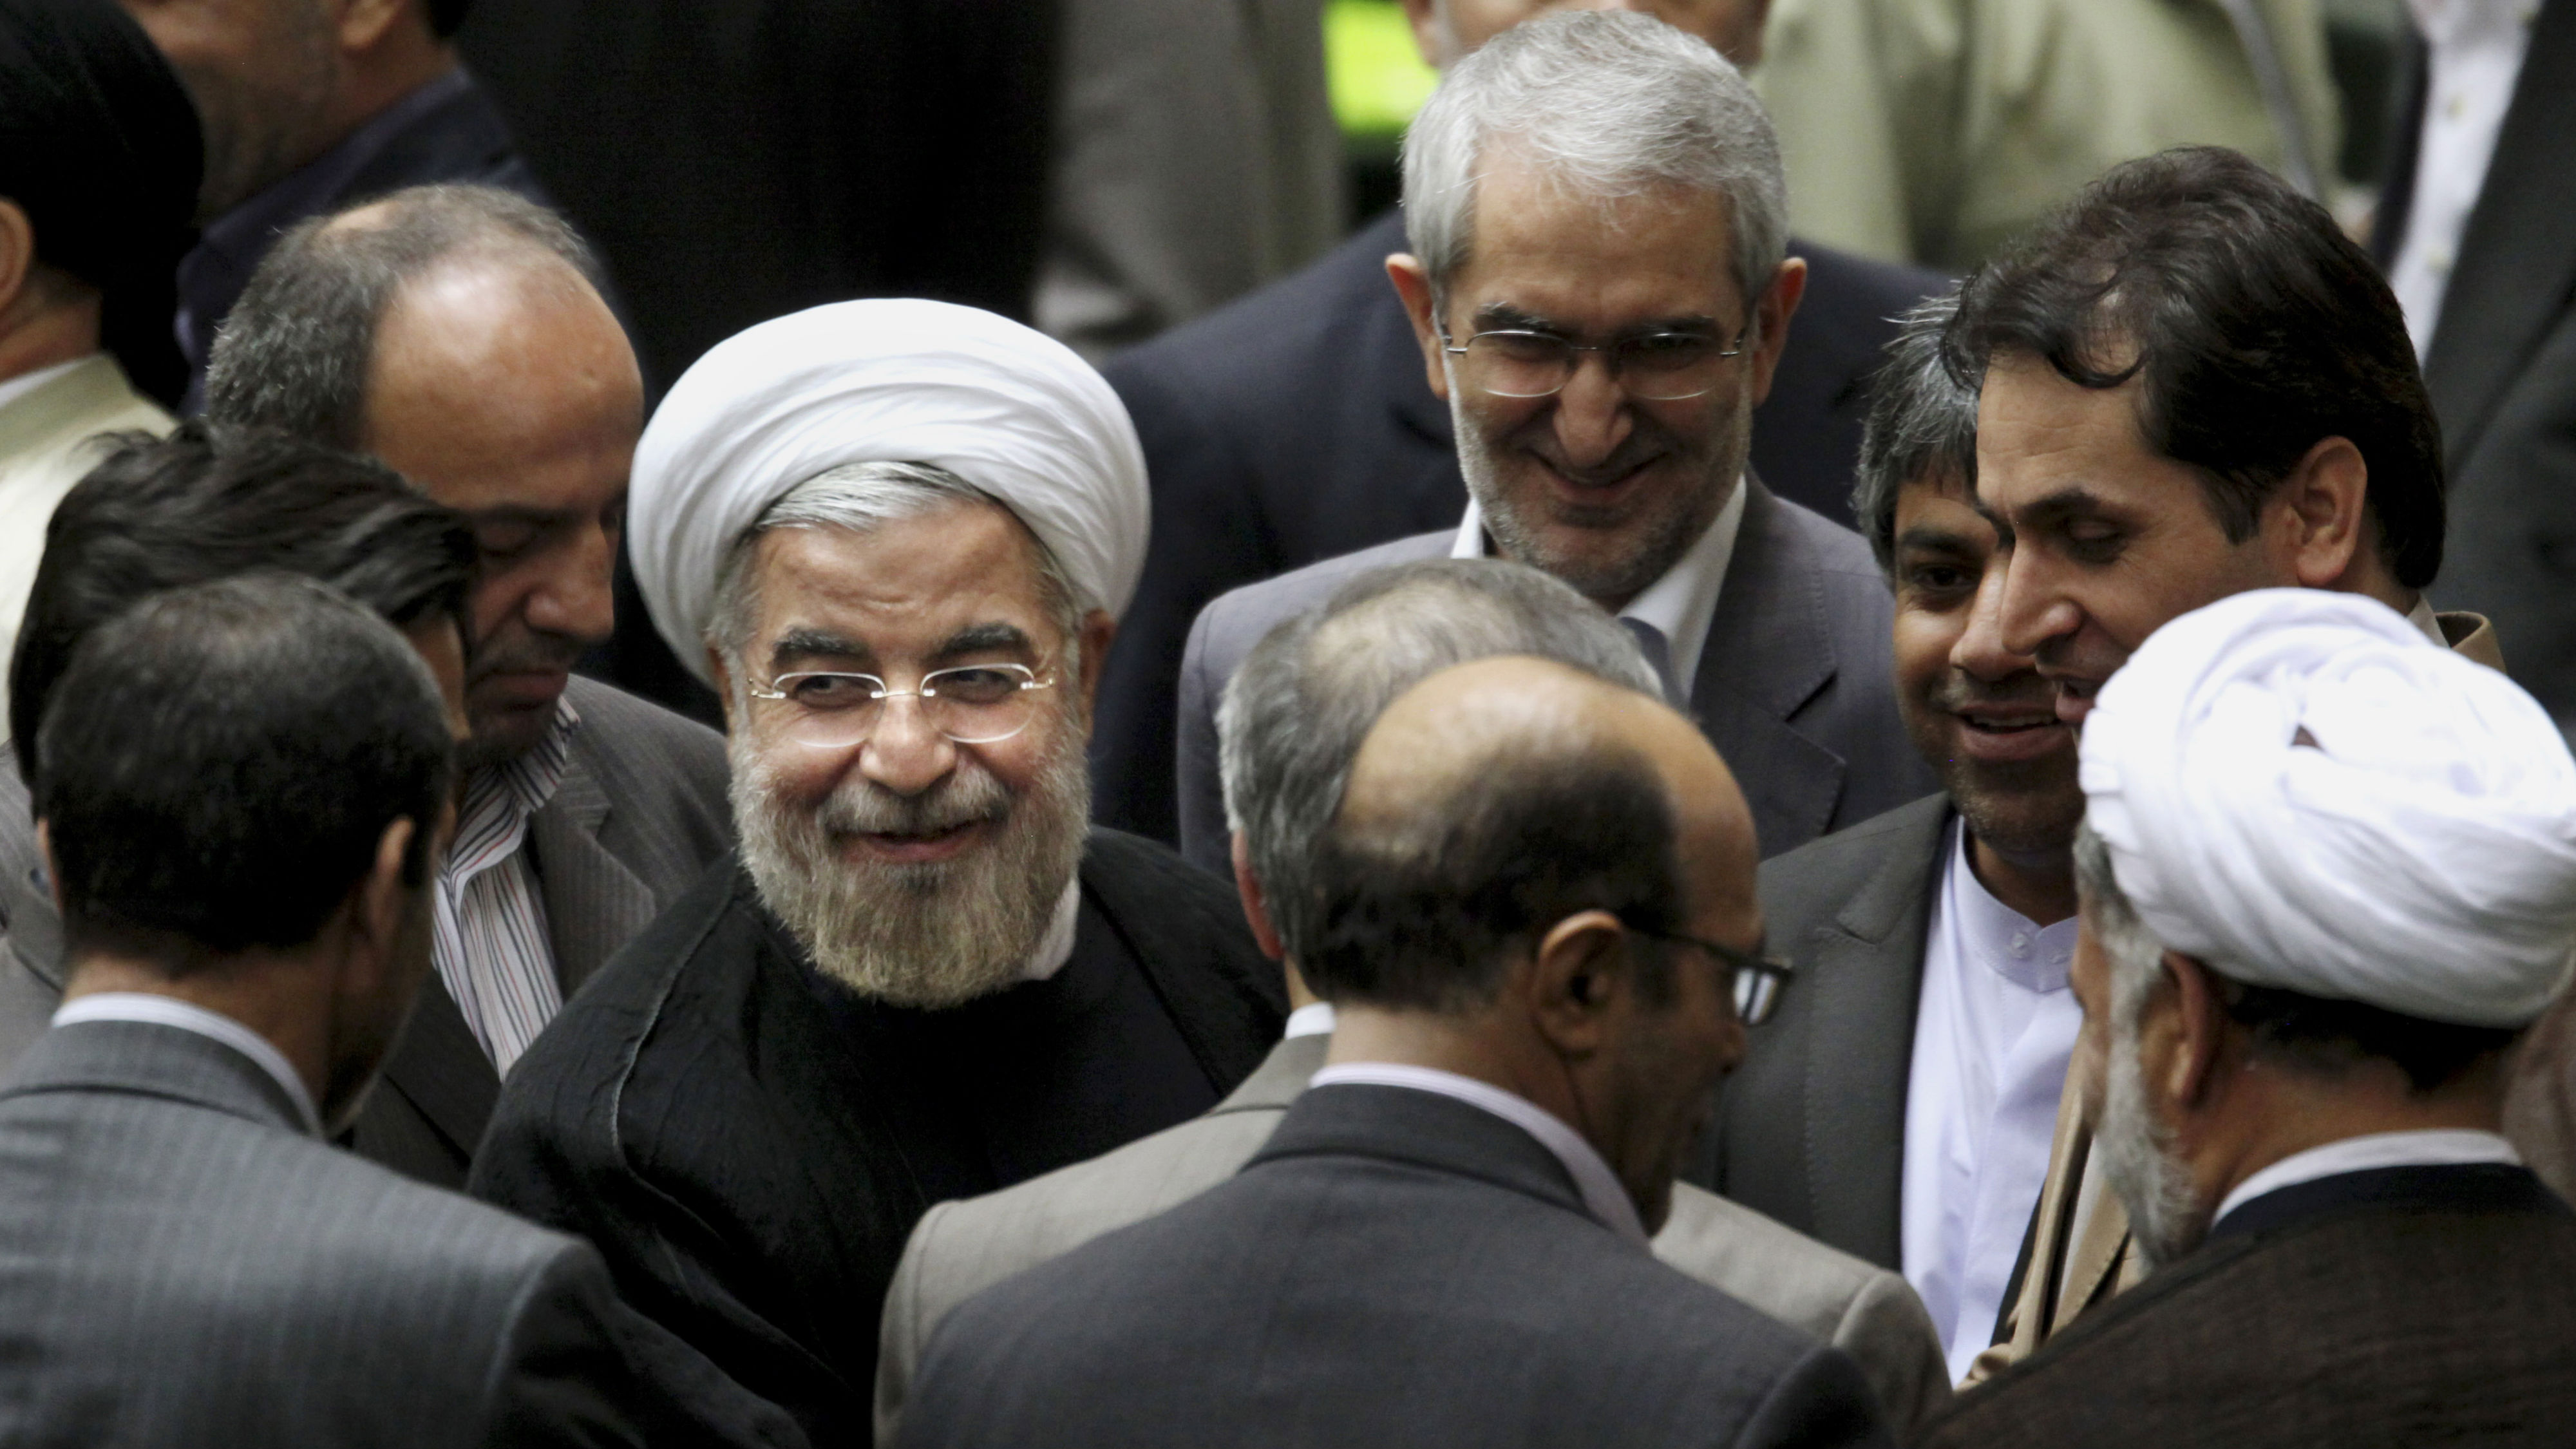 Iranian President Hasan Rouhani, center left with white turban, leaves at the conclusion of a session of the parliament to debate on his proposed Cabinet in Tehran, Iran, Tuesday, Aug. 13, 2013. In what is expected to be three days of debate ending Wednesday, legislators will vote individually to approve or reject each minister in Rouhani's 18-member Cabinet. (AP Photo/Ebrahim Noroozi)